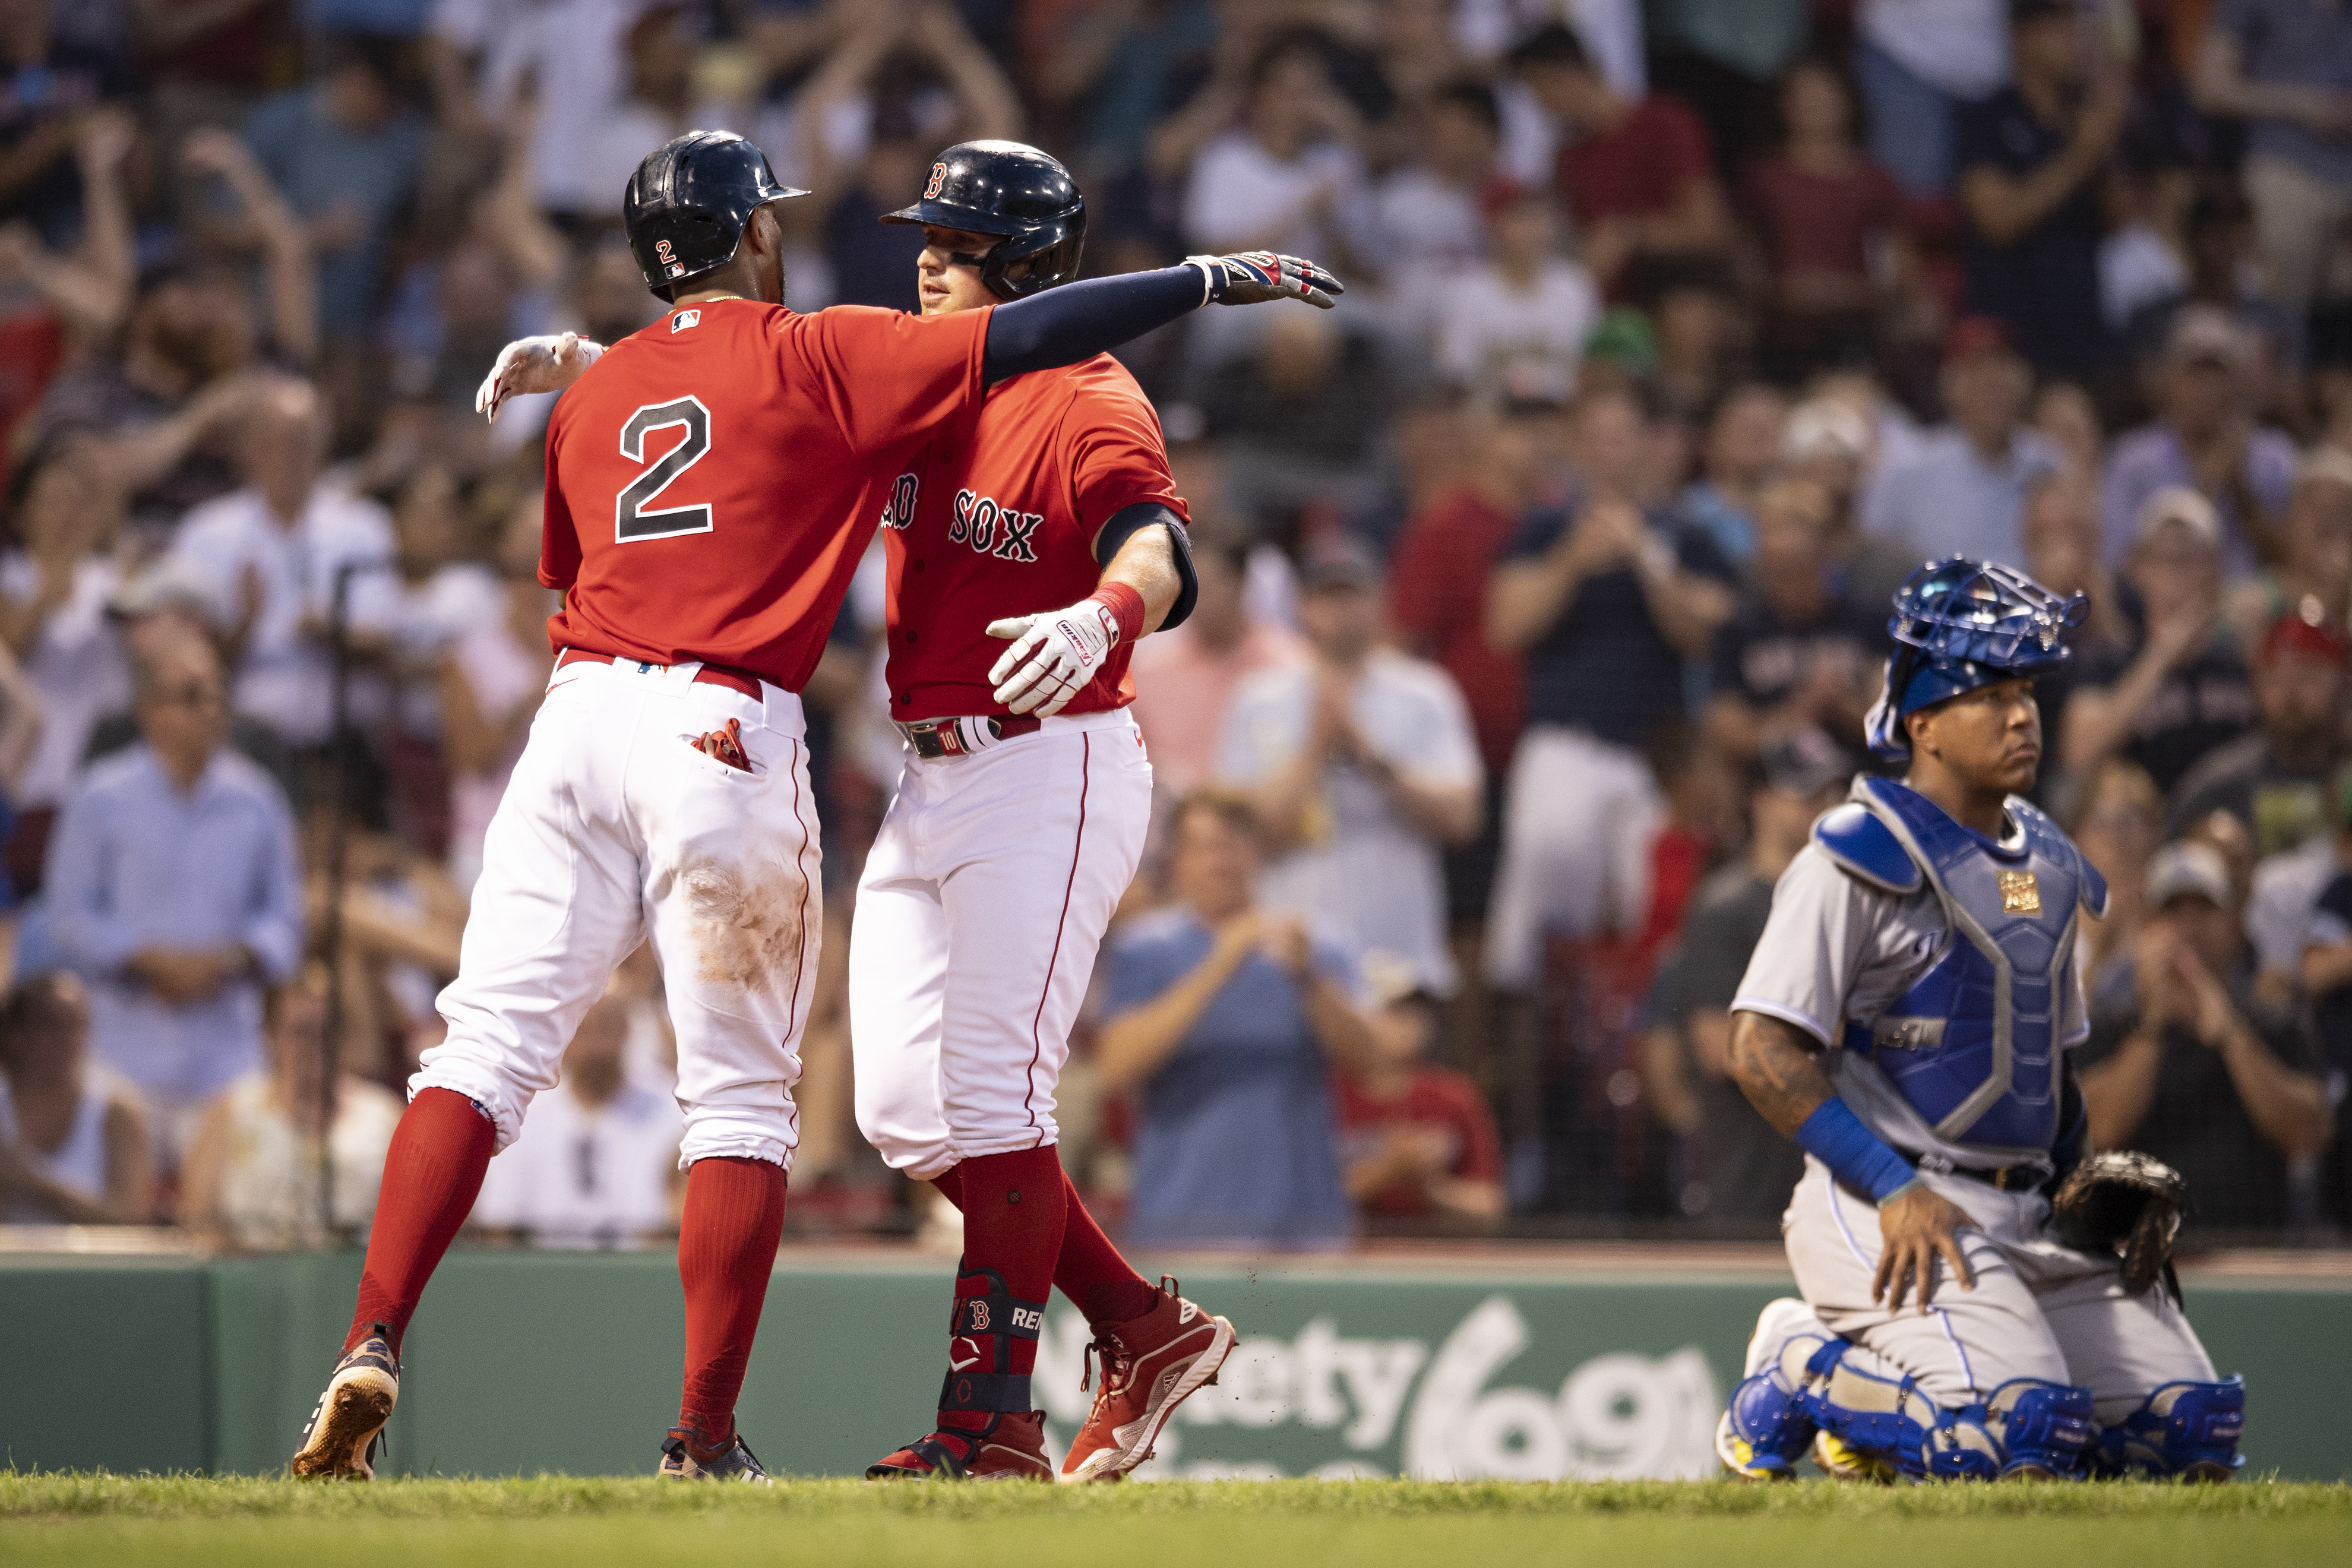 Hunter Renfroe #10 of the Boston Red Sox reacts with Xander Bogaerts #2 after hitting a two-run home run during the fourth inning of a game against the Kansas City Royals on June 28, 2021 at Fenway Park in Boston, Massachusetts.